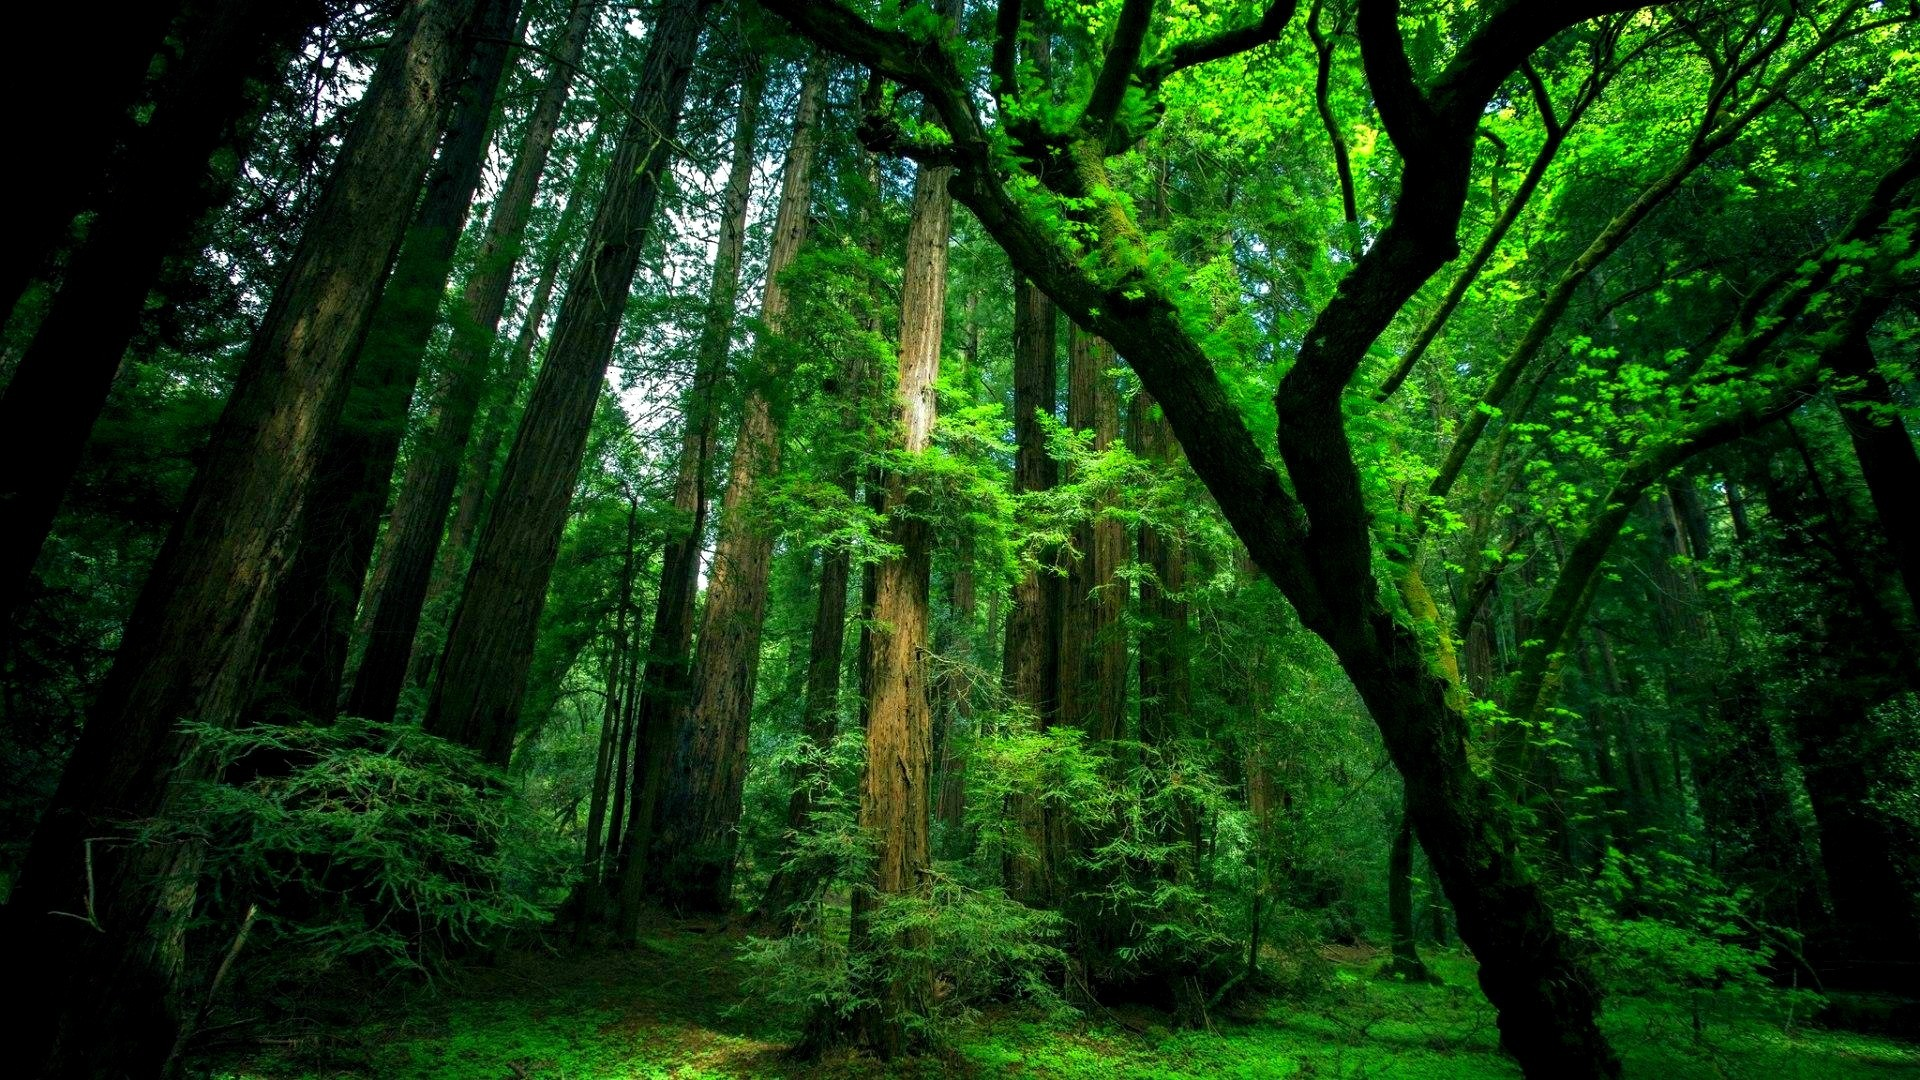 Wallpaperspoints: Natural green forest wallpaper | Full HD ...